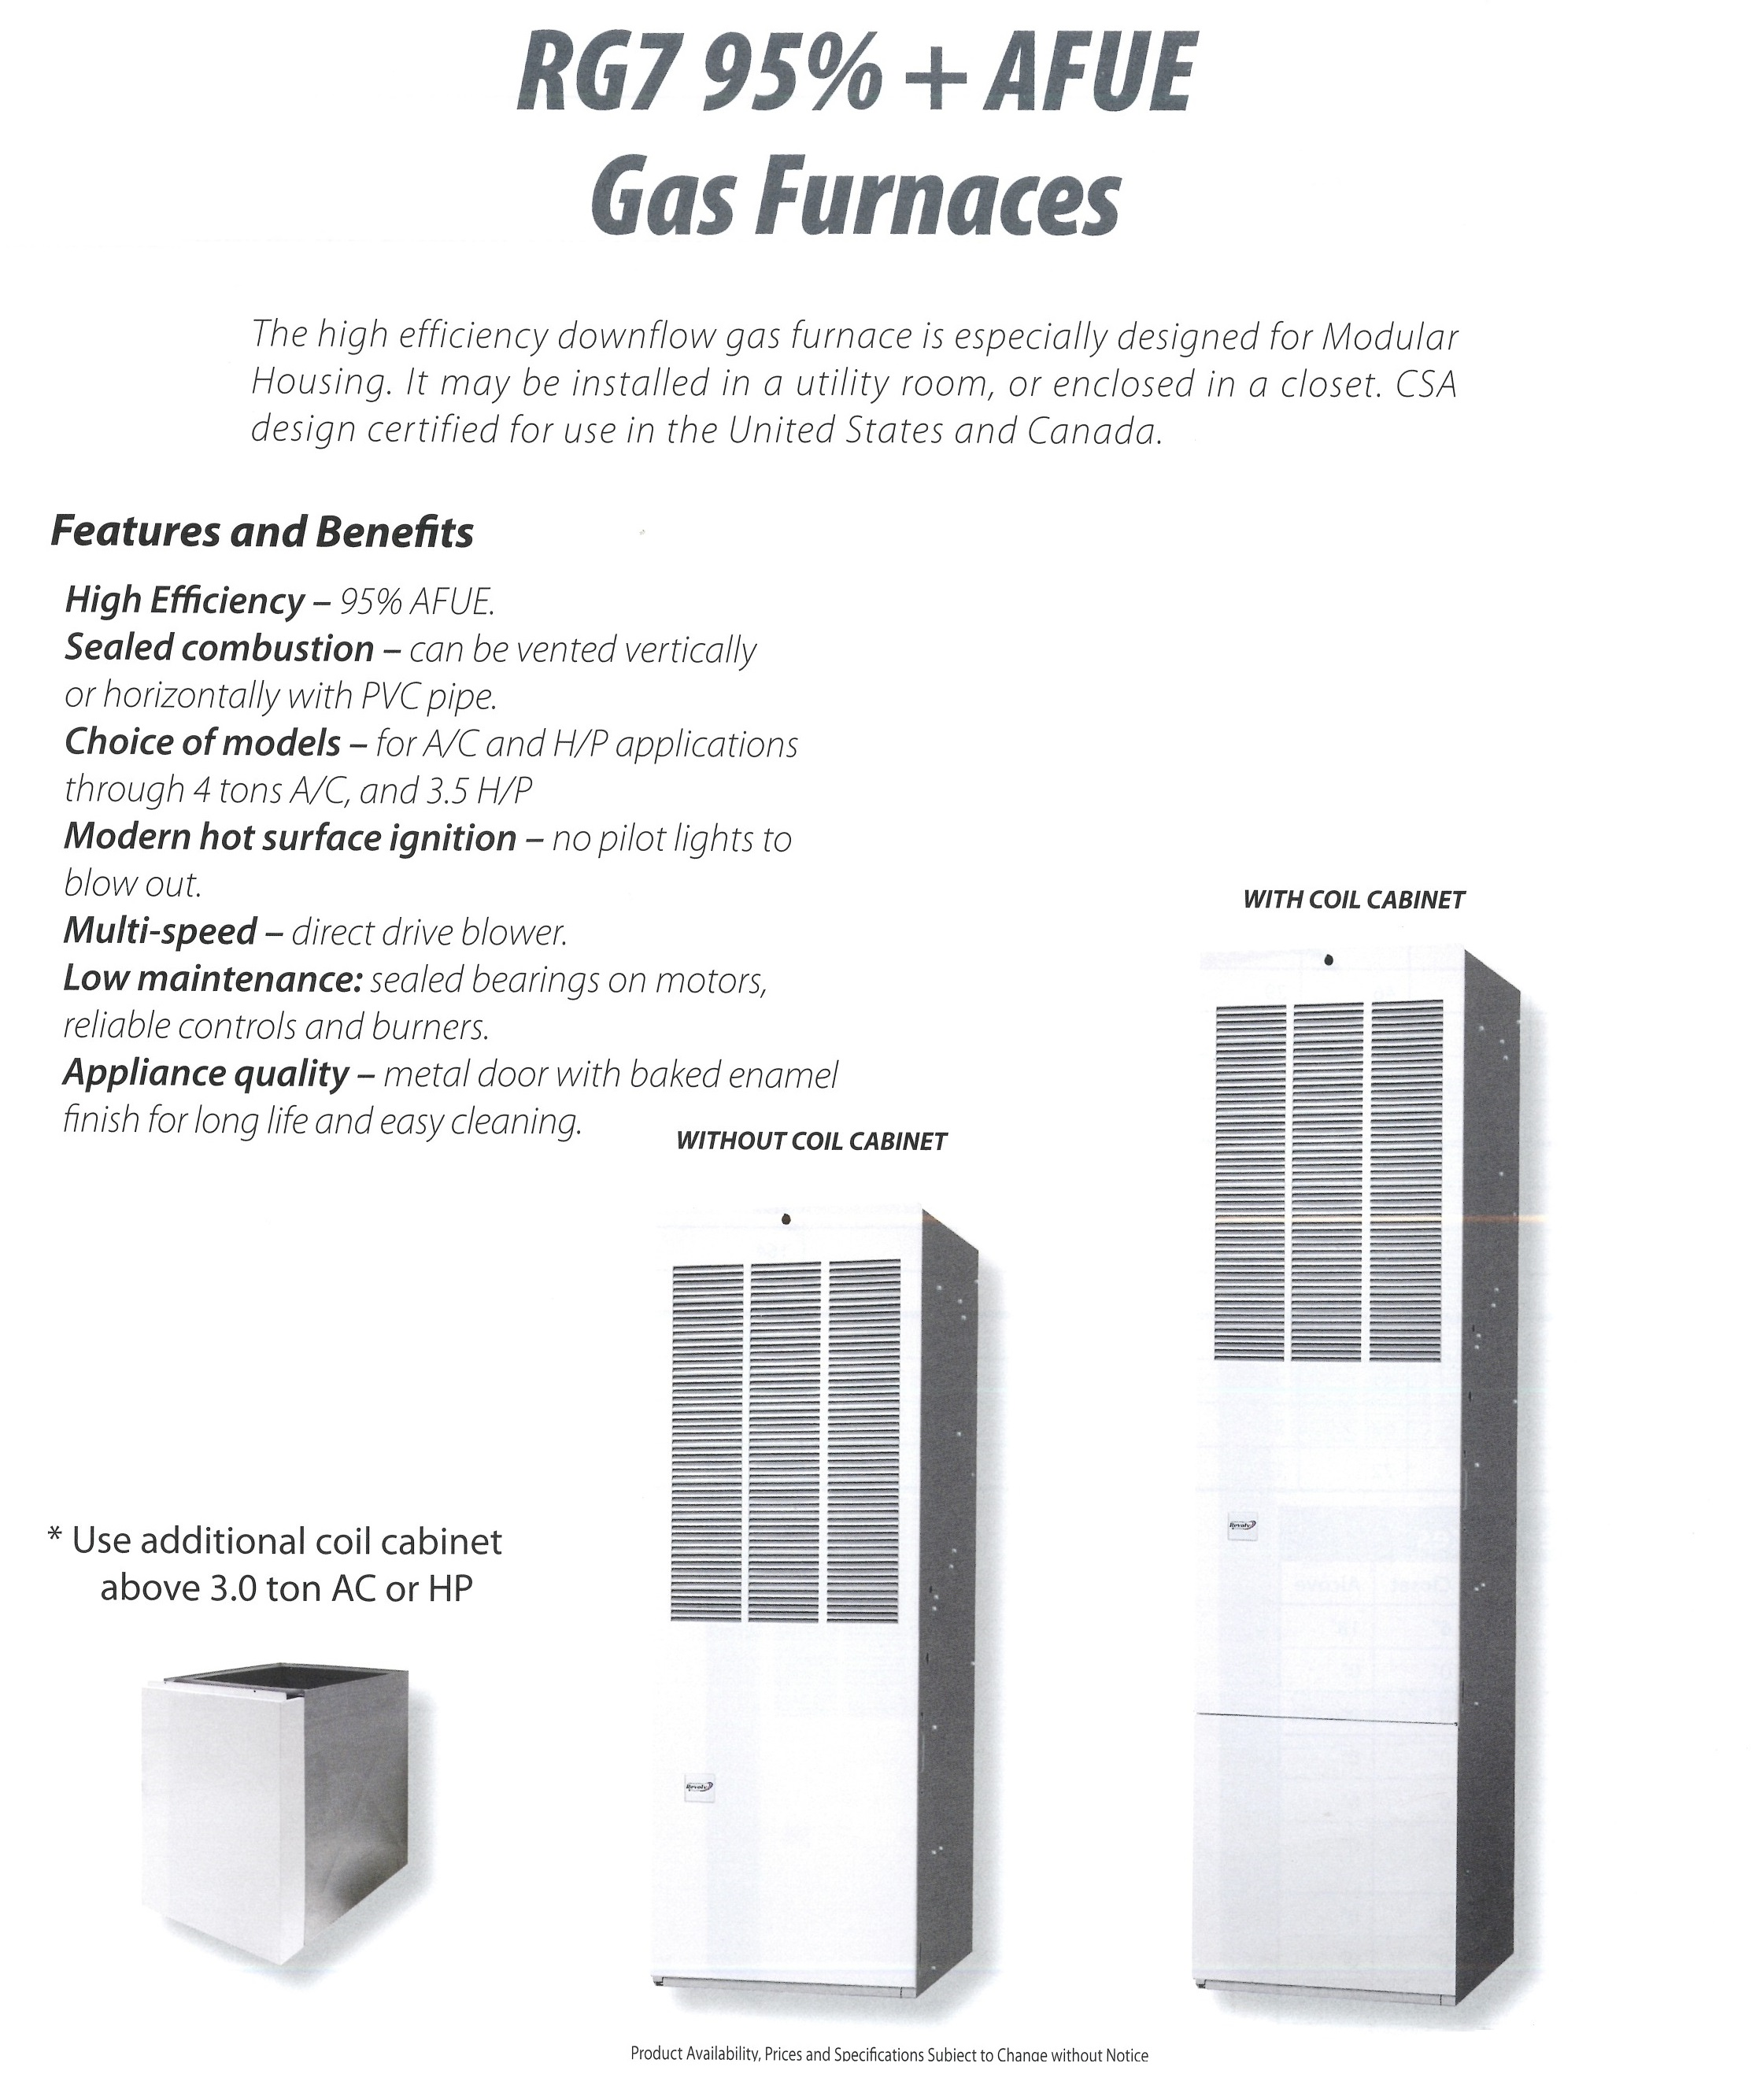 RG7 95% + AFUE GAS FURNACES